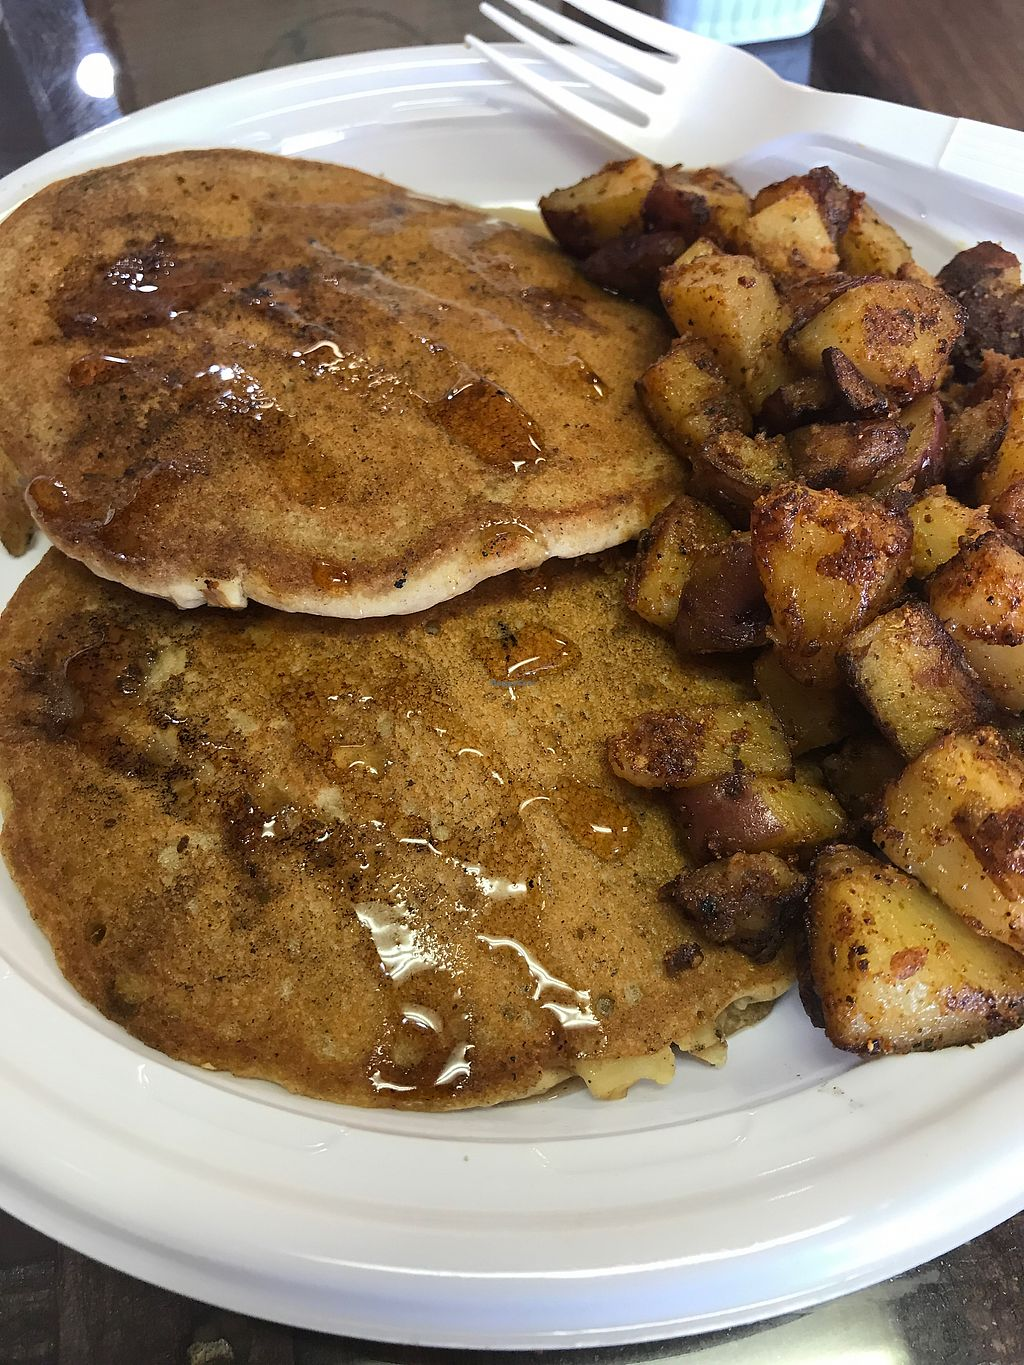 "Photo of CLOSED: Wet My Whistle  by <a href=""/members/profile/KerryElise"">KerryElise</a> <br/>sweet potato pancakes and home fries <br/> August 29, 2017  - <a href='/contact/abuse/image/88992/298675'>Report</a>"